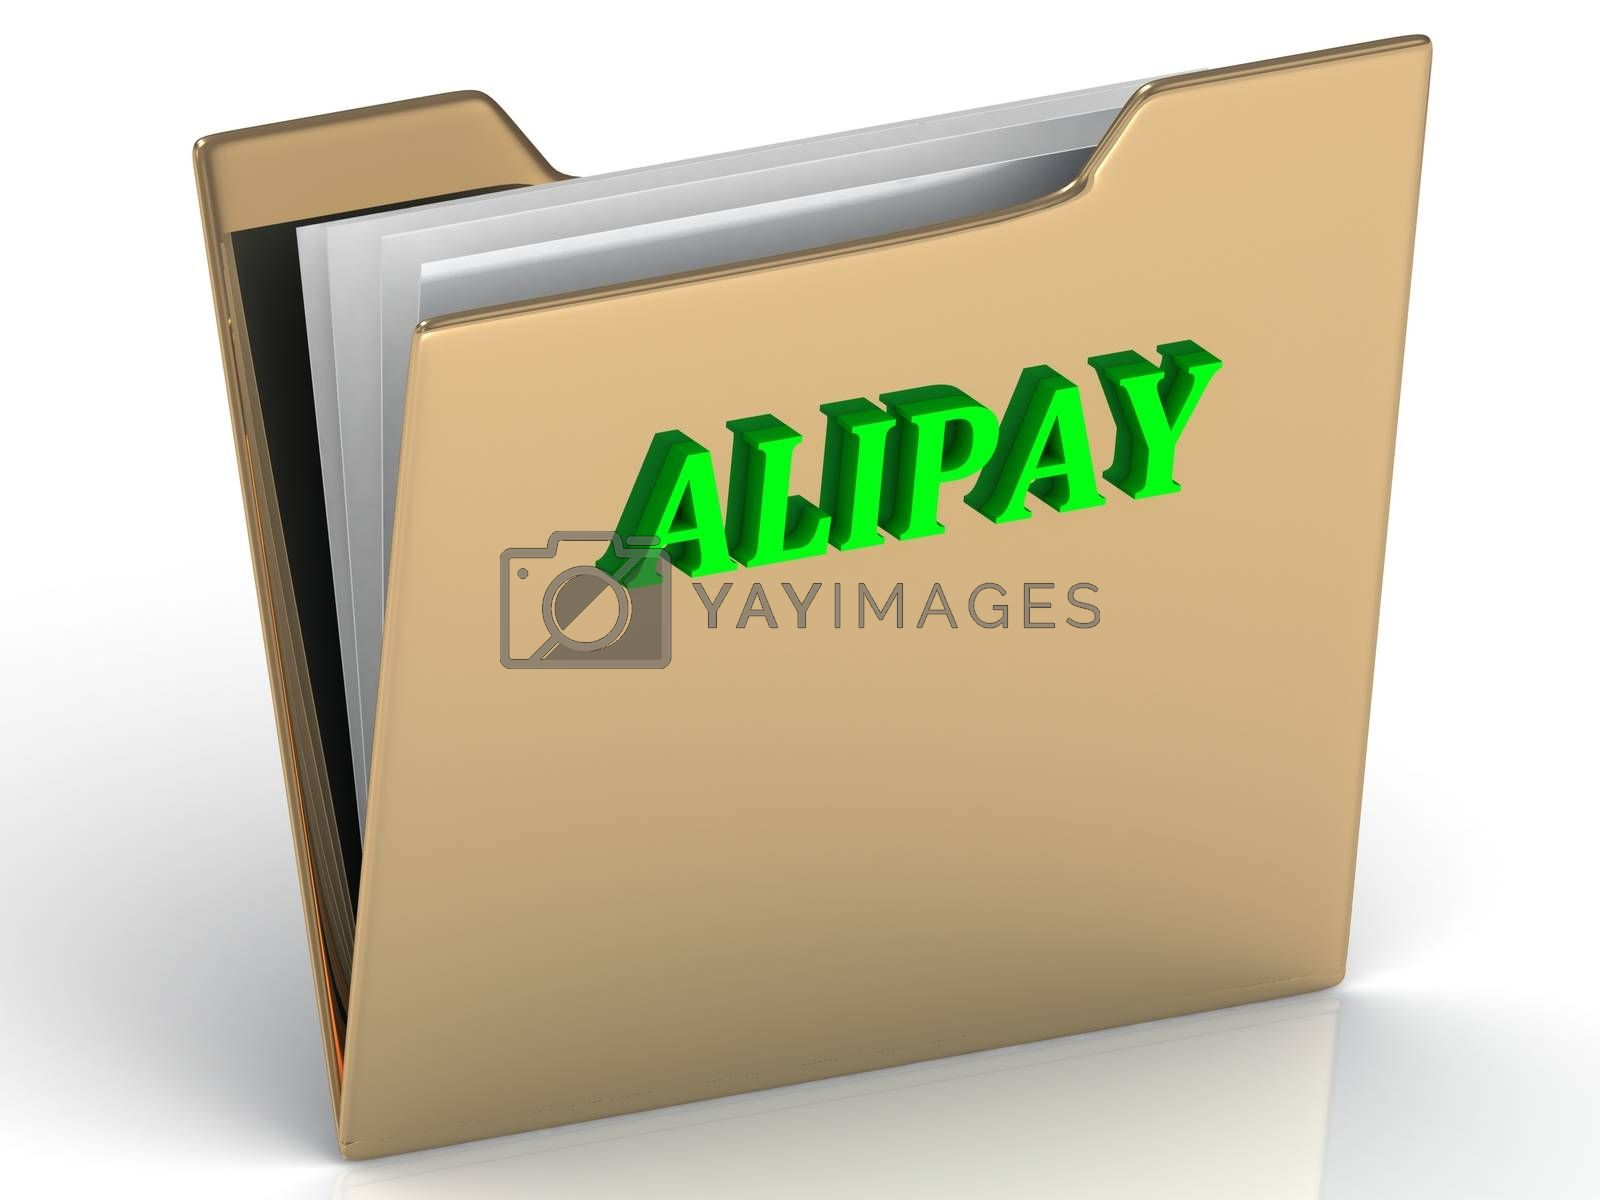 ALIPAY - bright letters on a gold folder on a white background